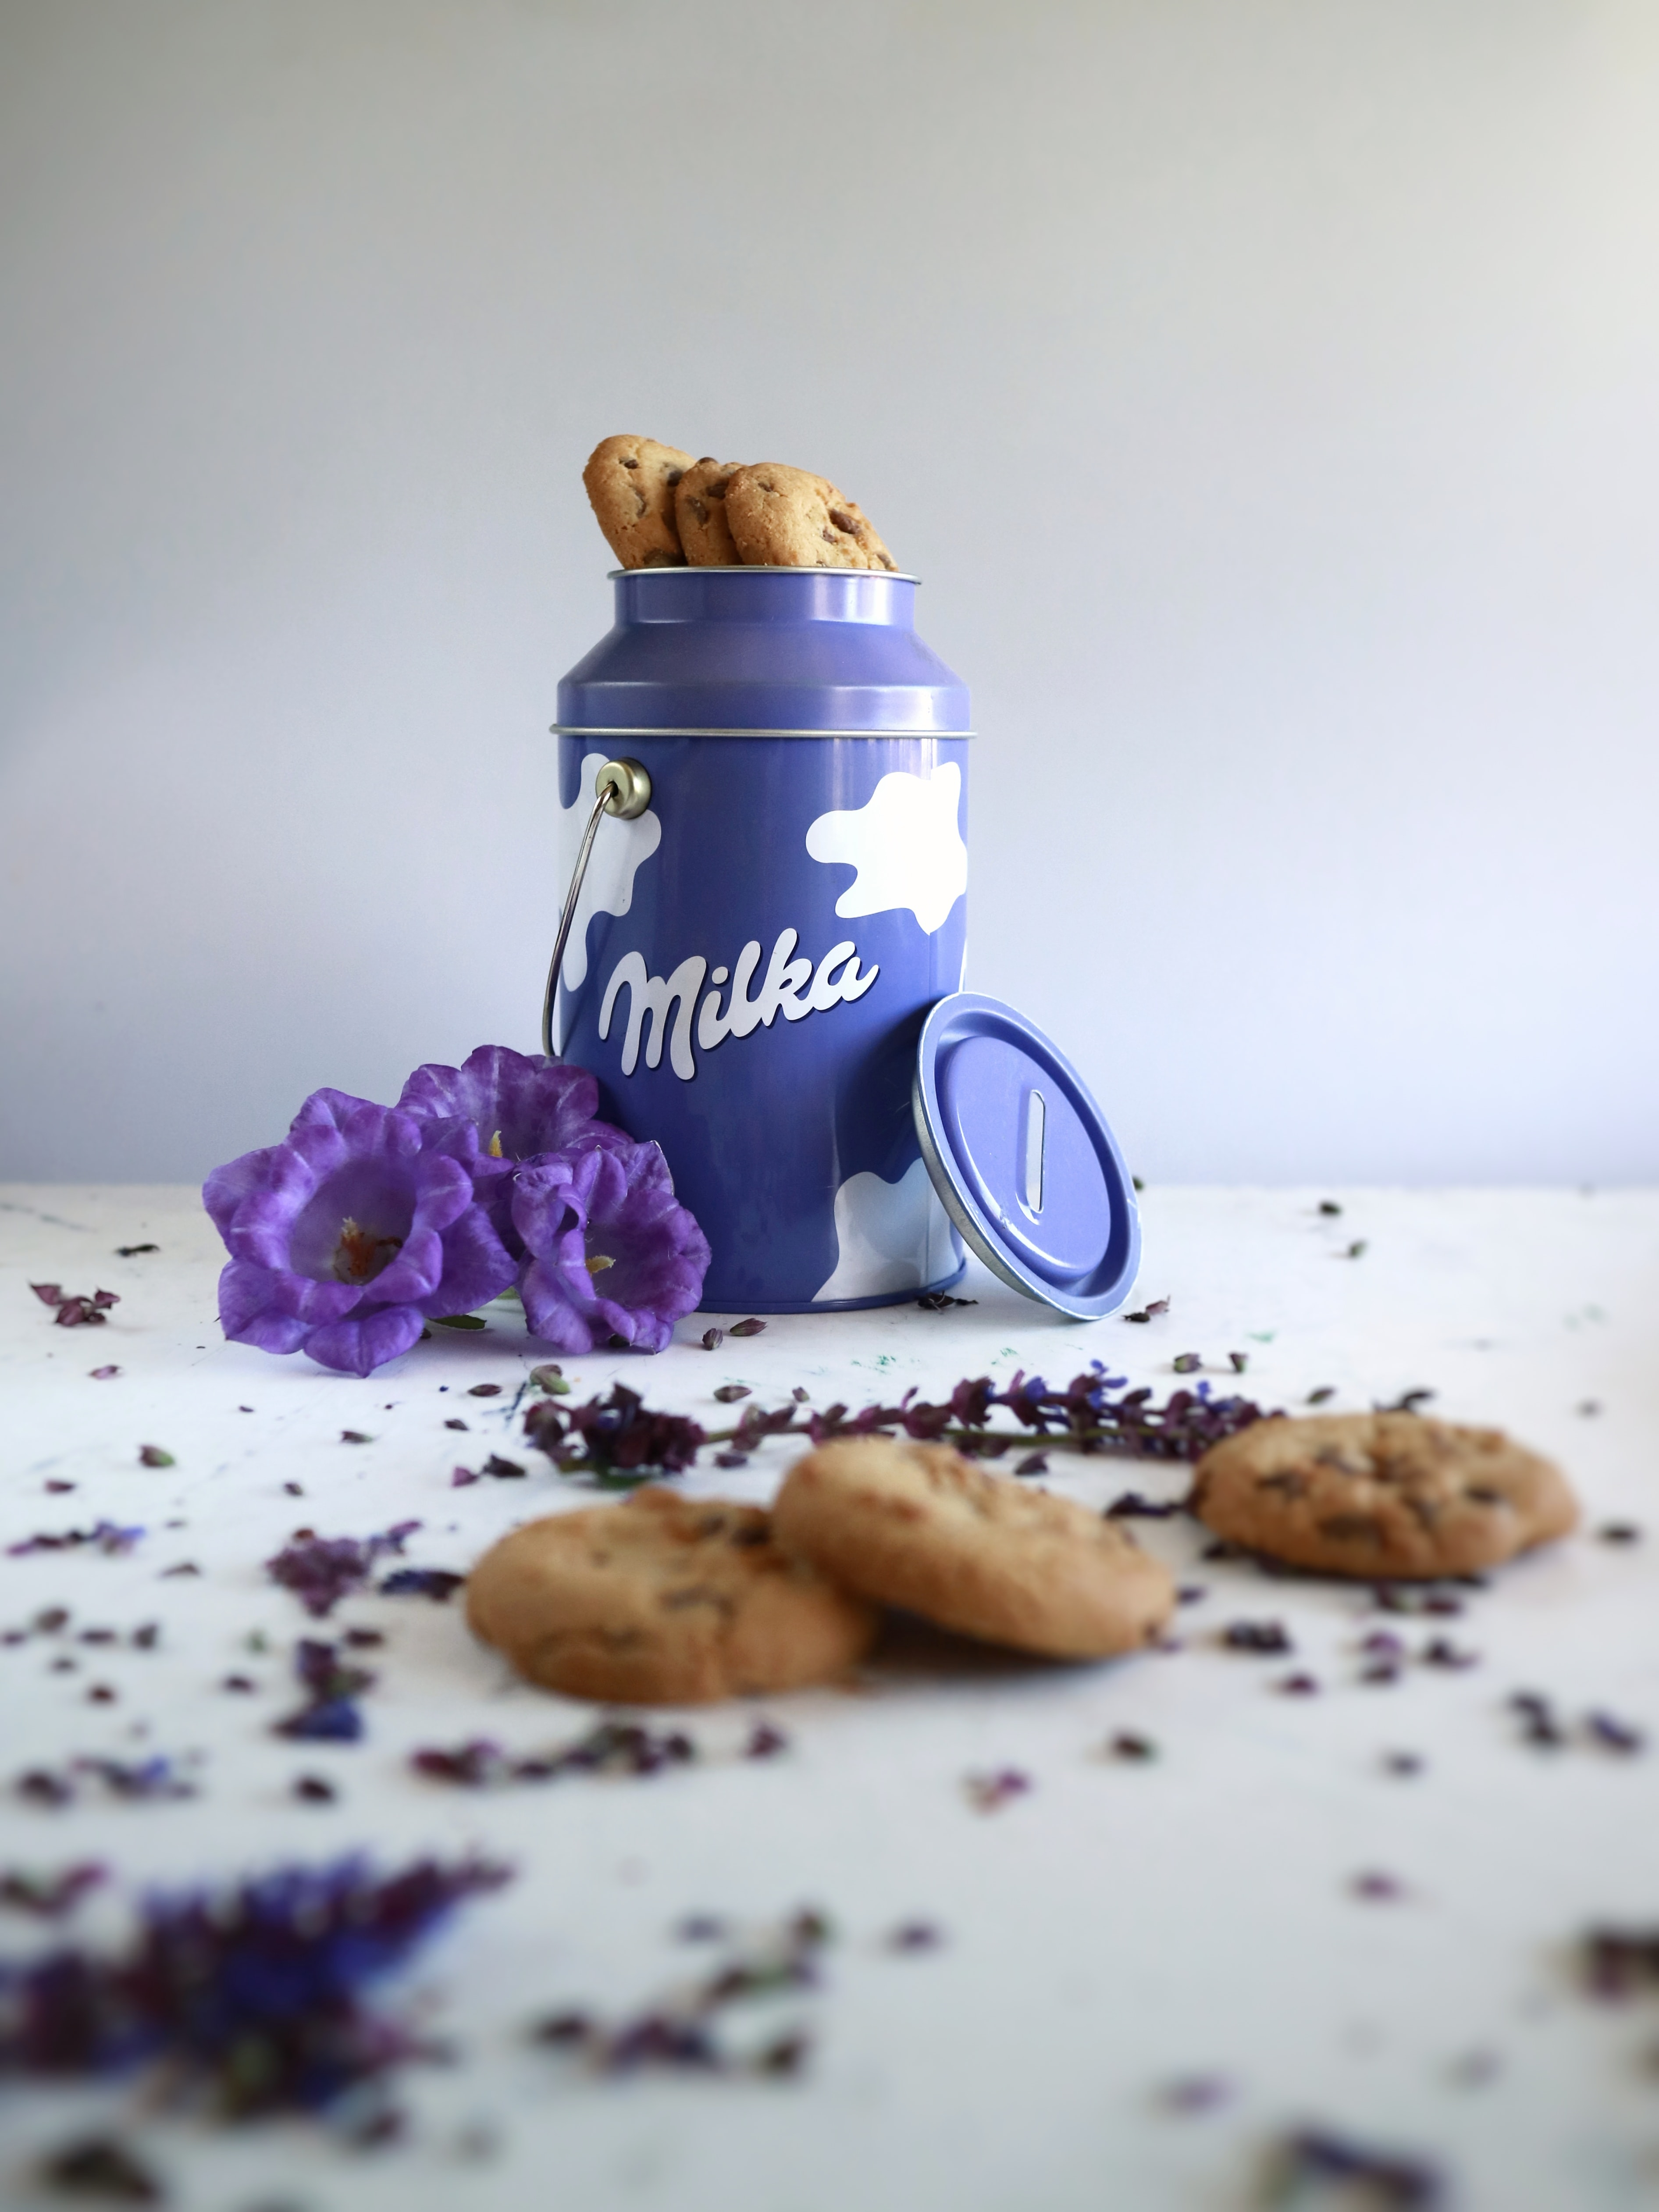 cookies in blue container